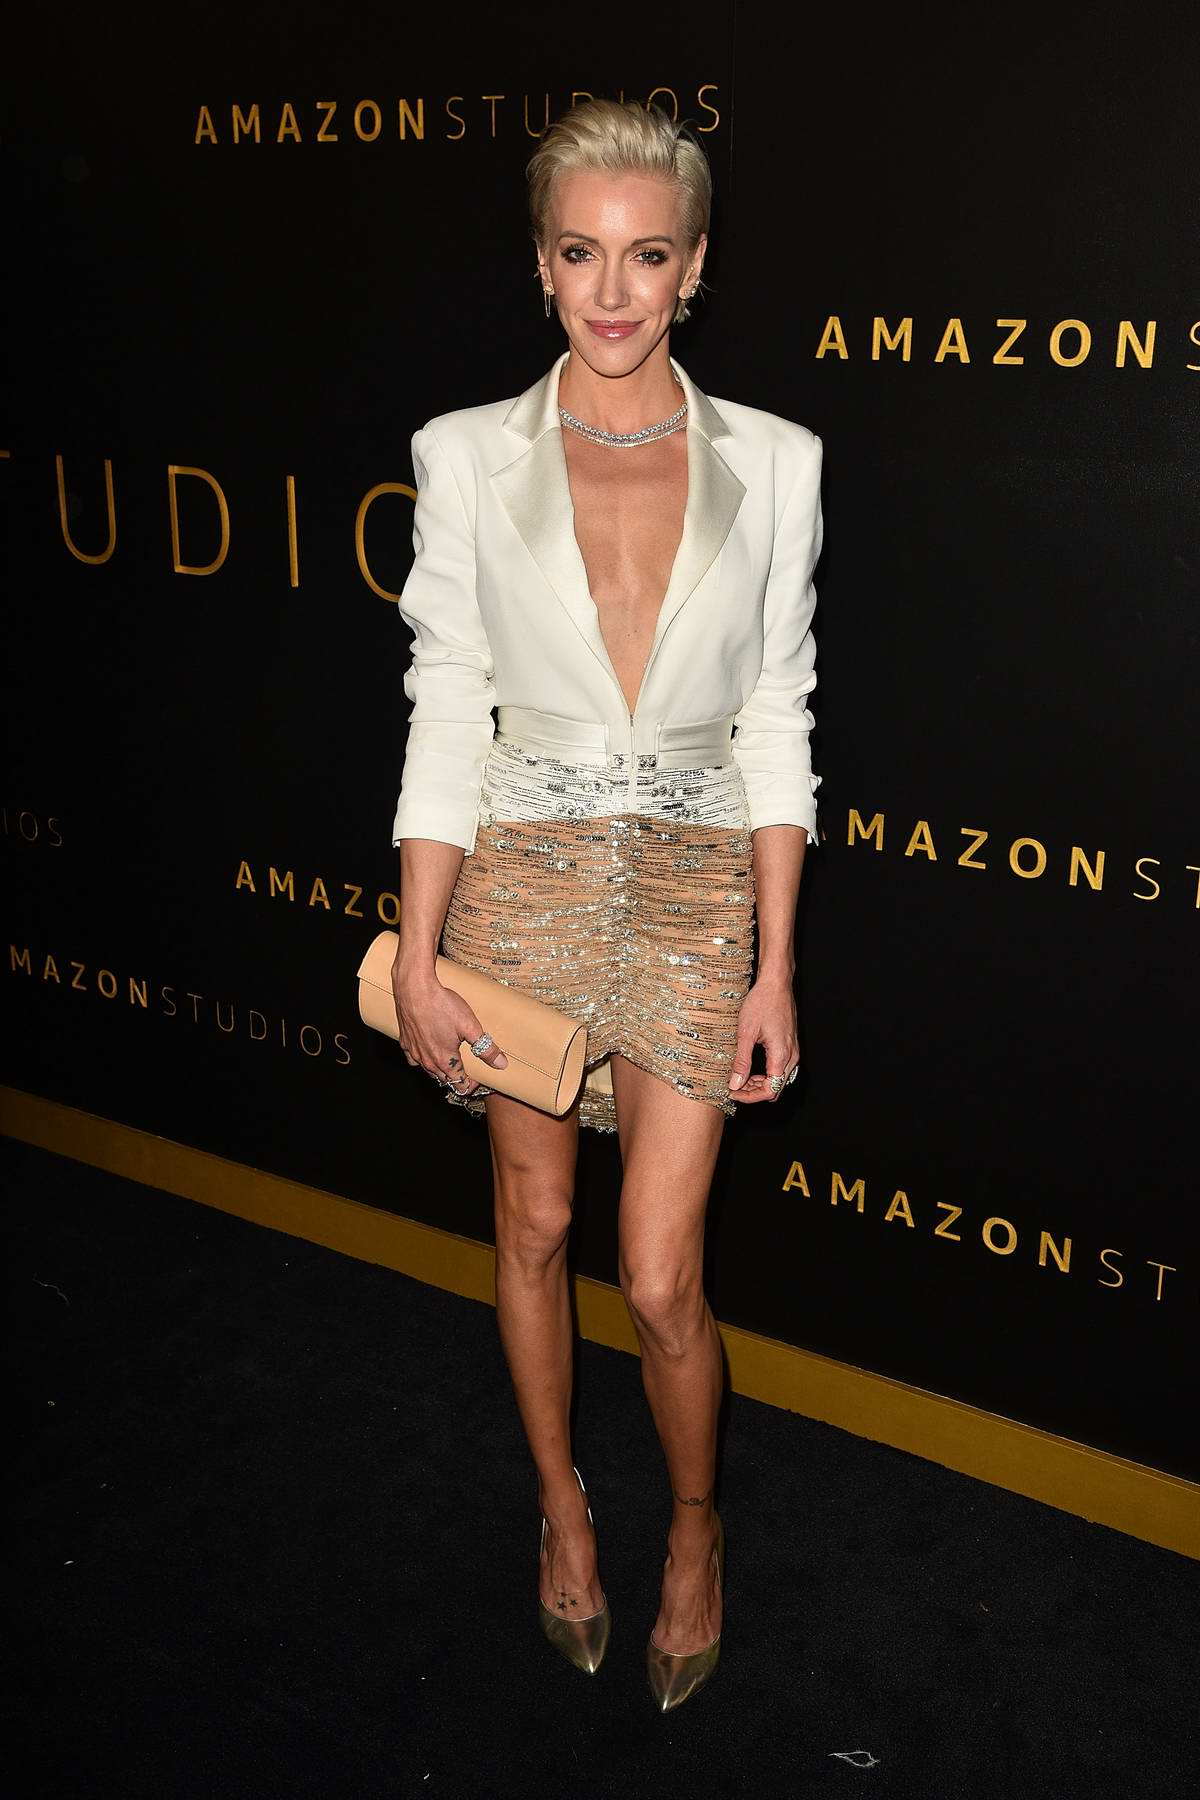 Katie Cassidy attends Amazon Studios Golden Globes After-Party at The Beverly Hilton Hotel in Beverly Hills, California